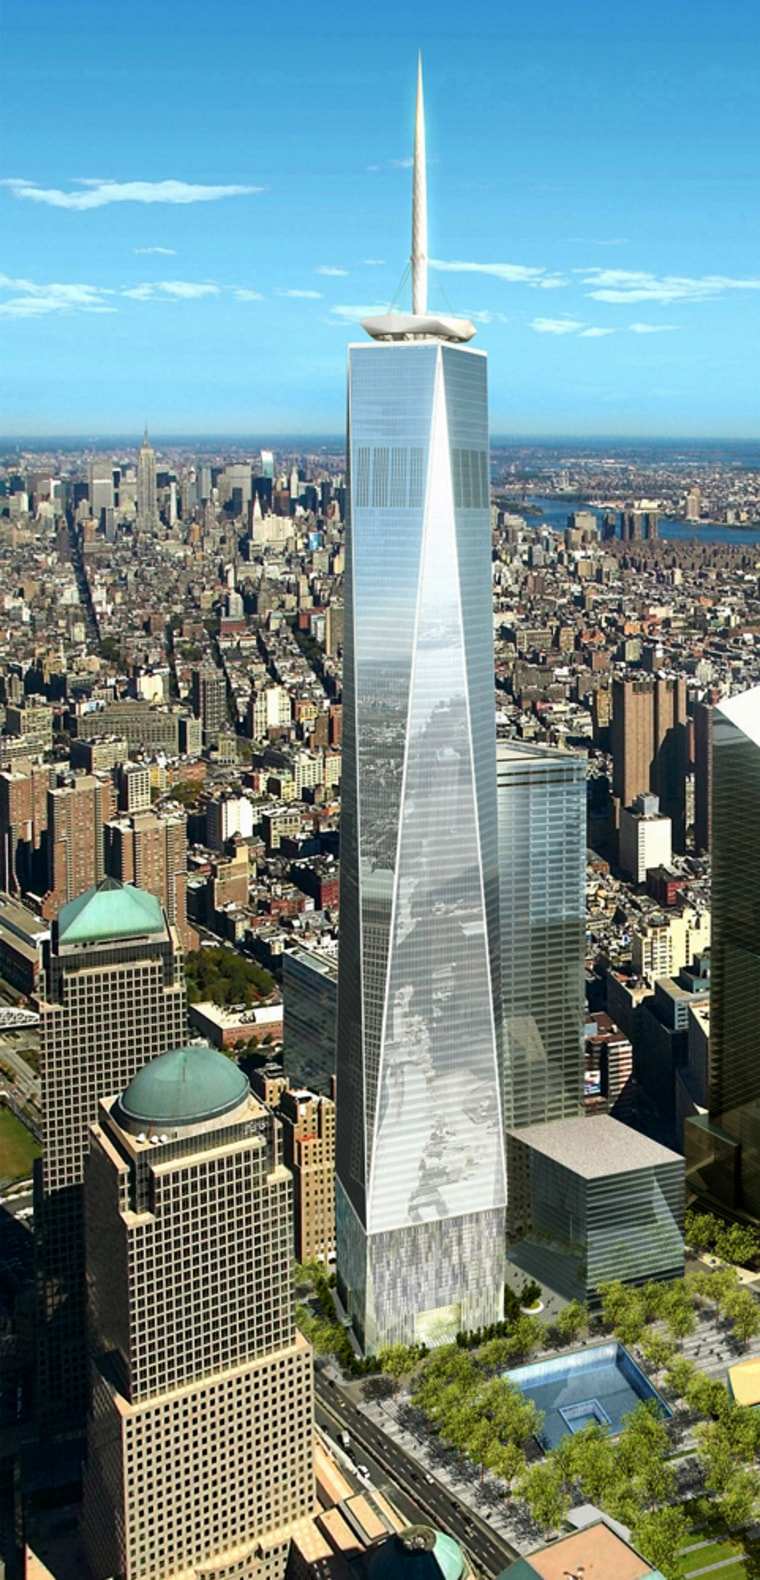 Image: artist rendering of One World Trade Center building